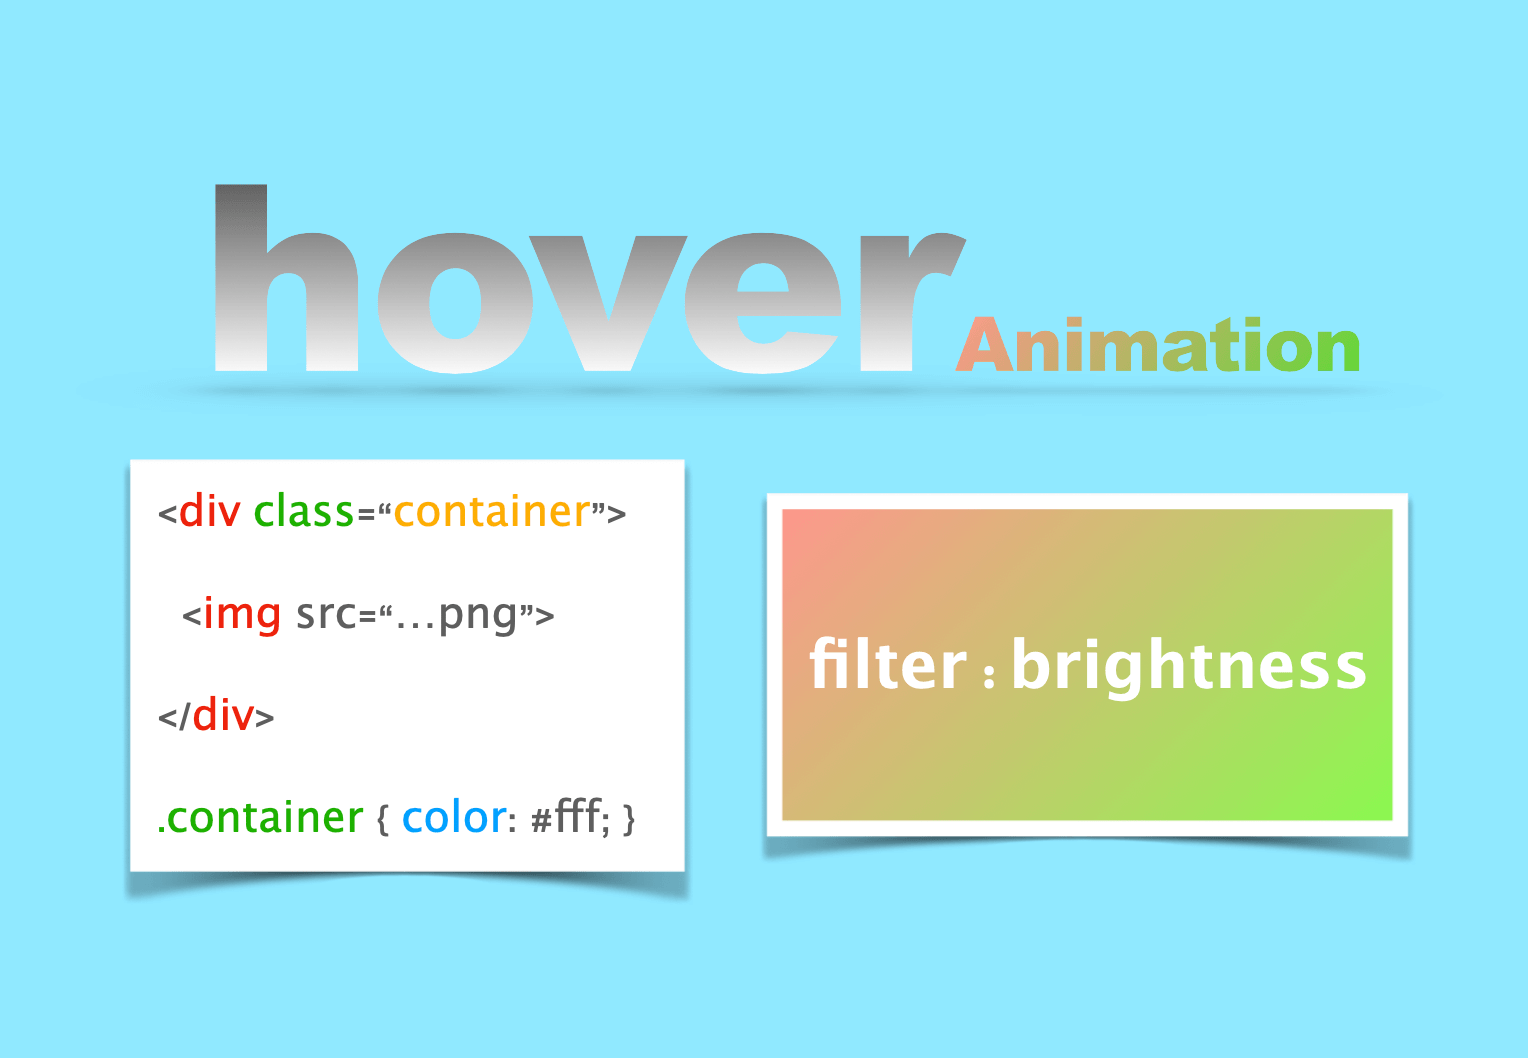 filter-brightness-topimage.png